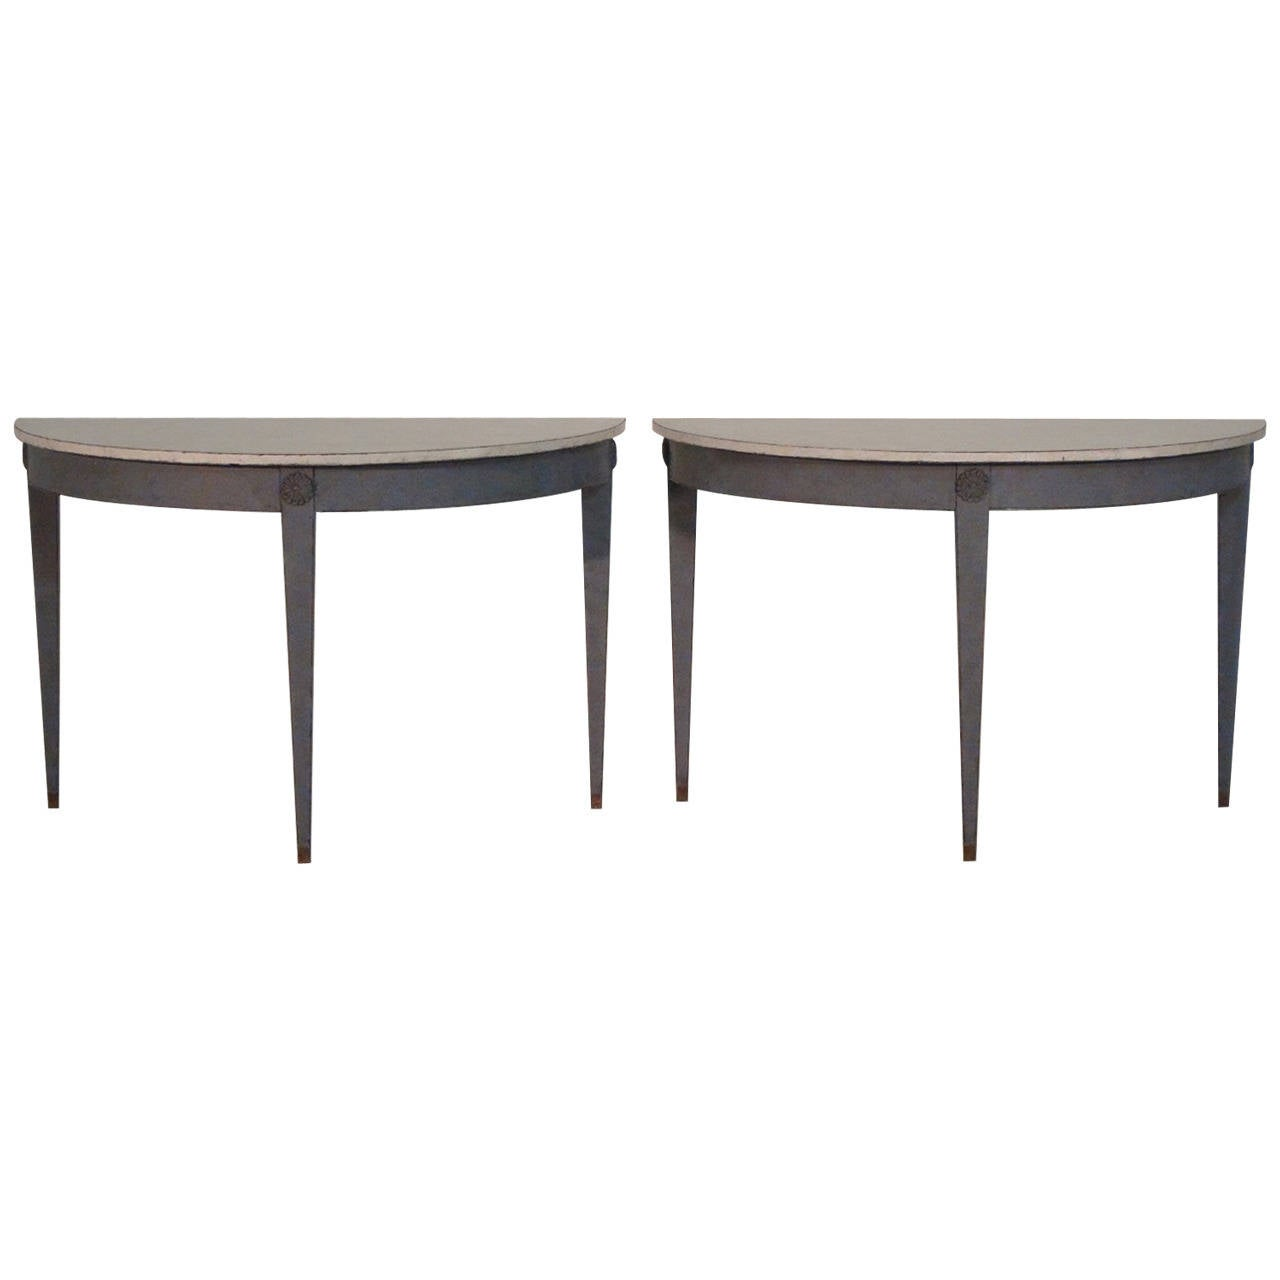 19th Century Pair of Swedish Demilune Tables in the Gustavian Style 1